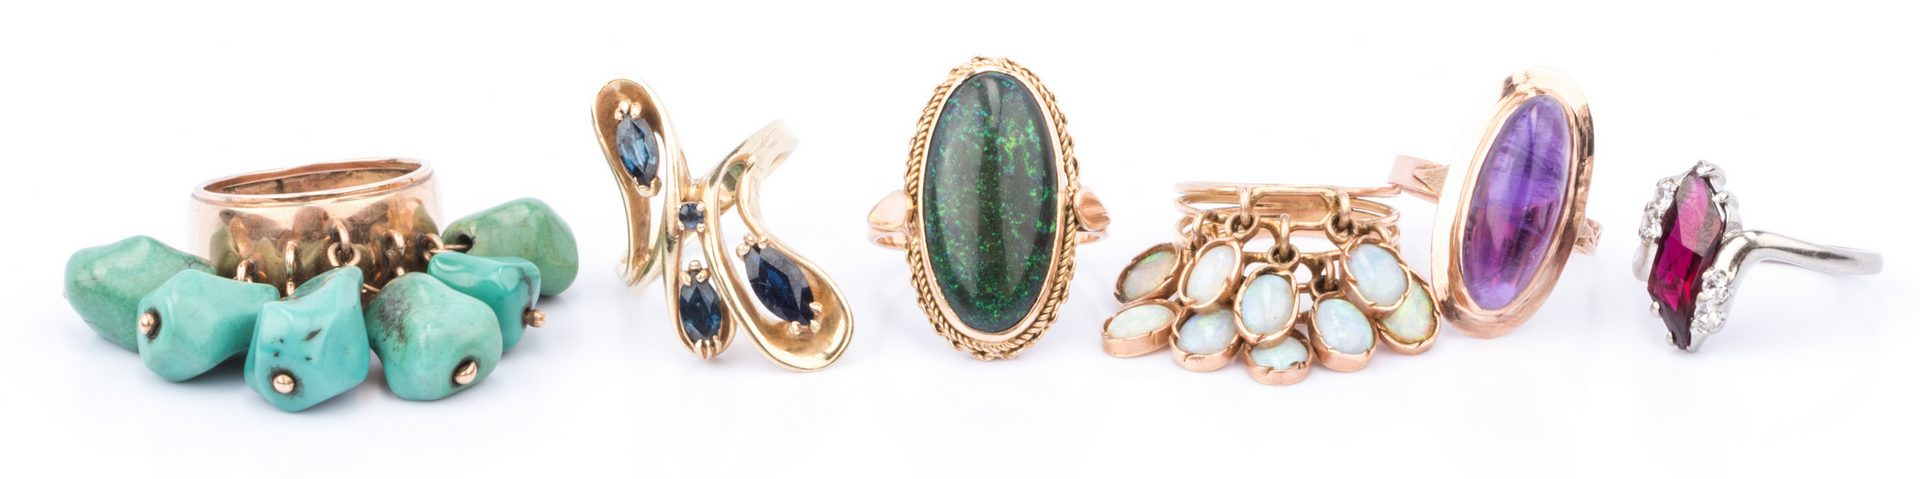 Lot 381: Group of 9 Cocktail Rings